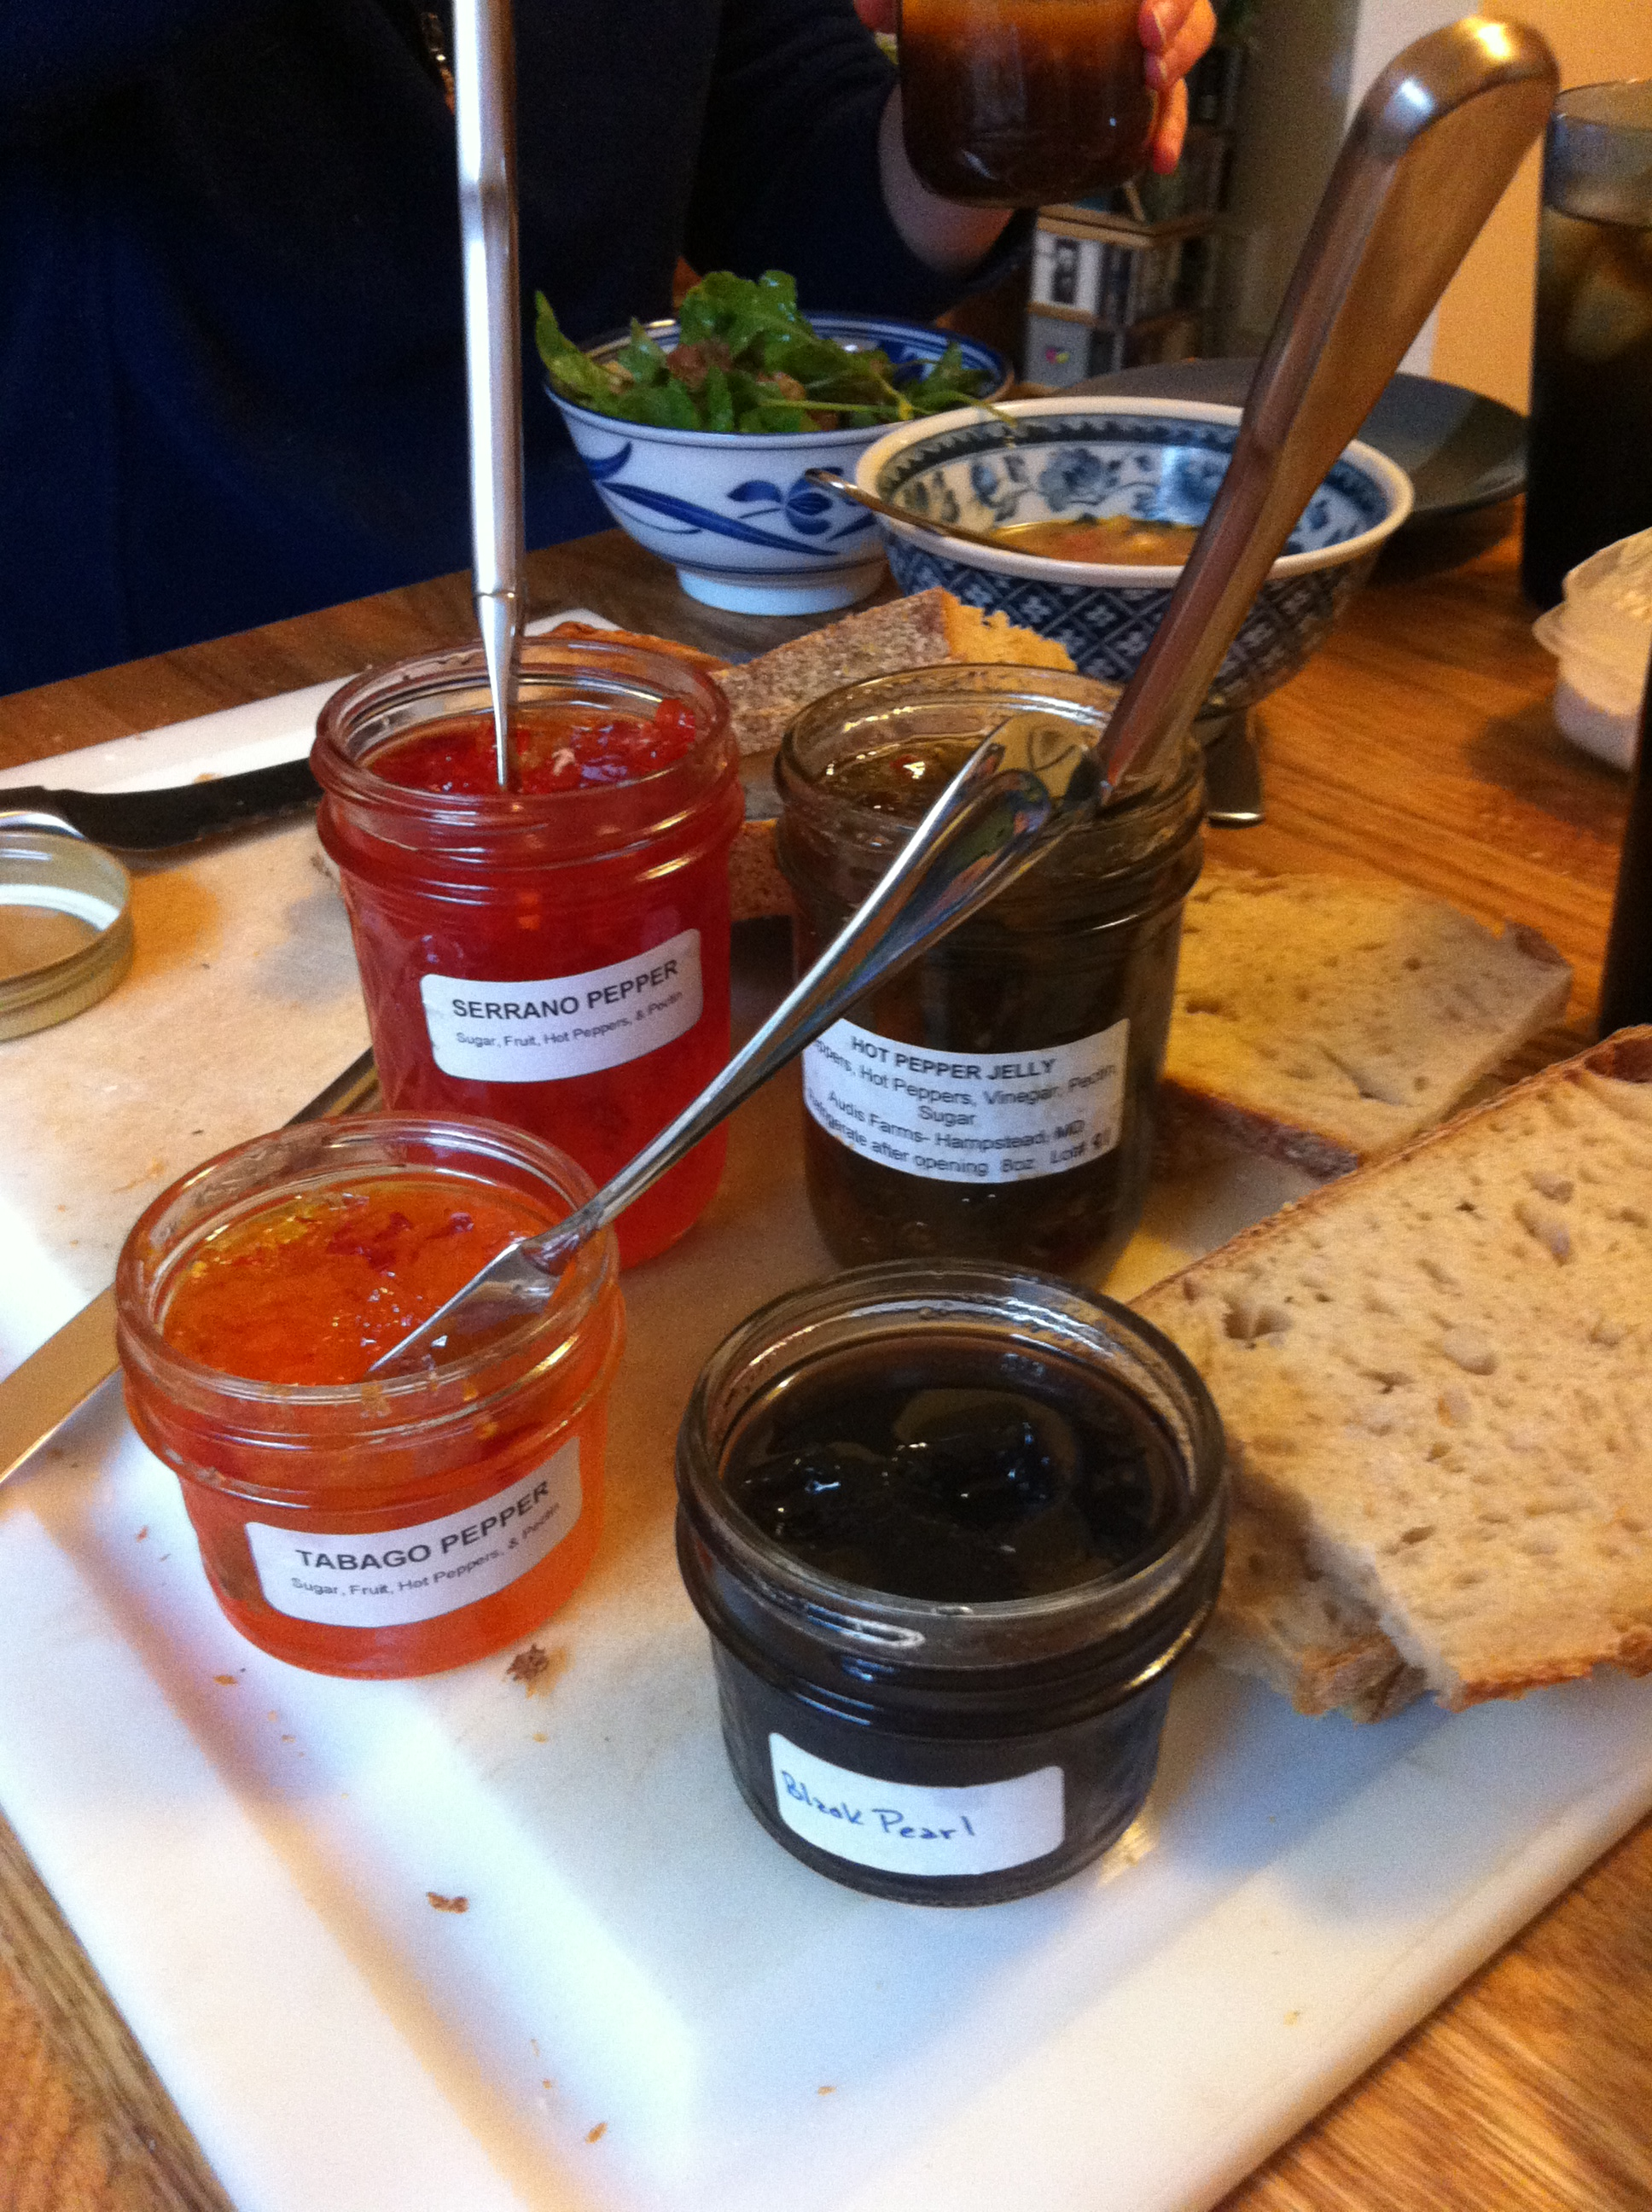 Savory jams made of peppers